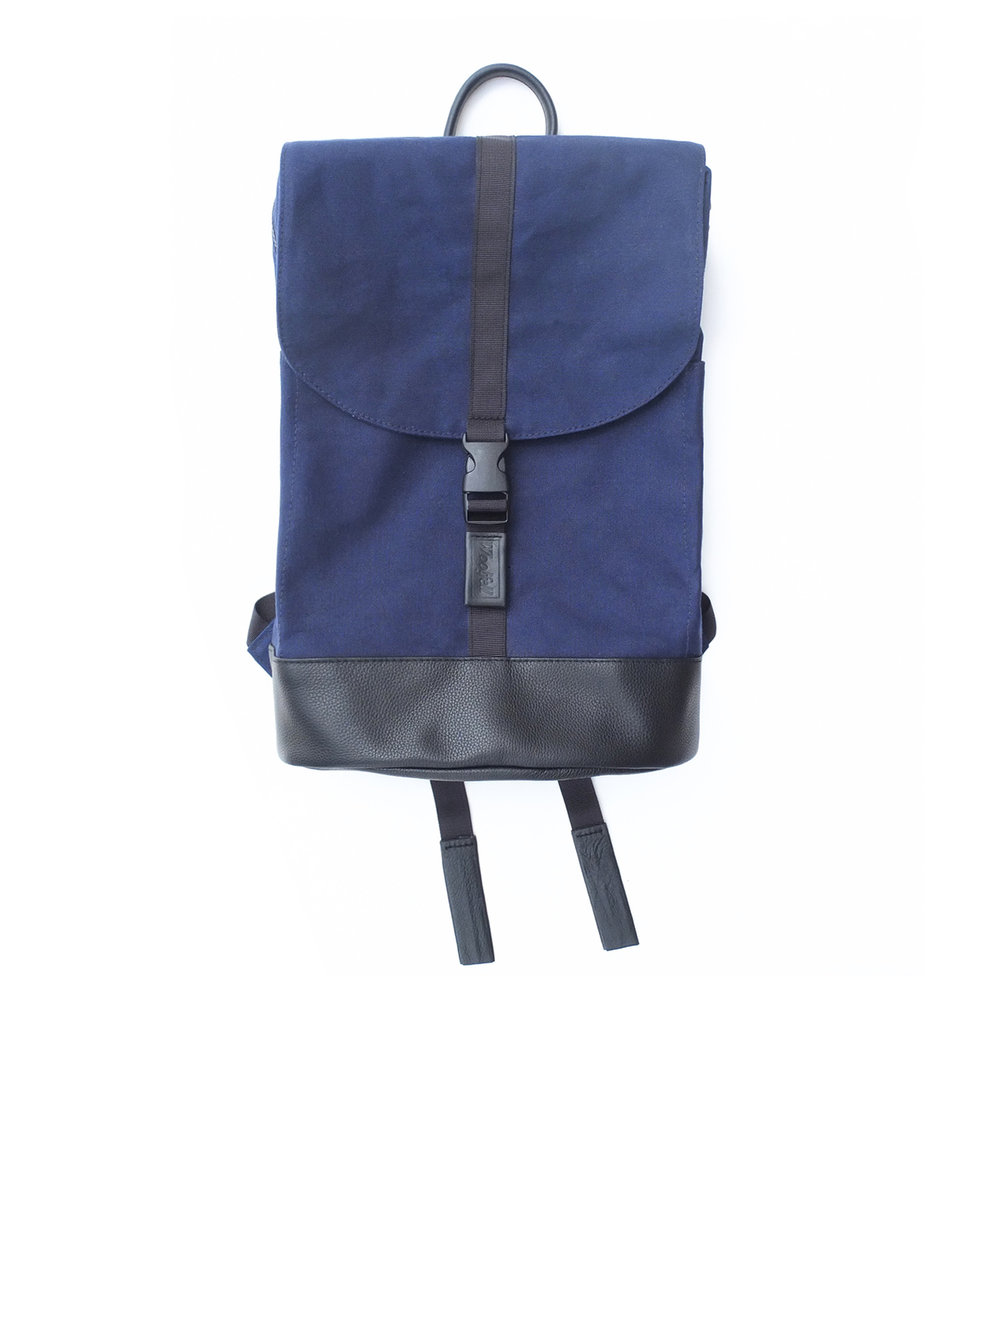 Fugato backpack - more colors available200.00$